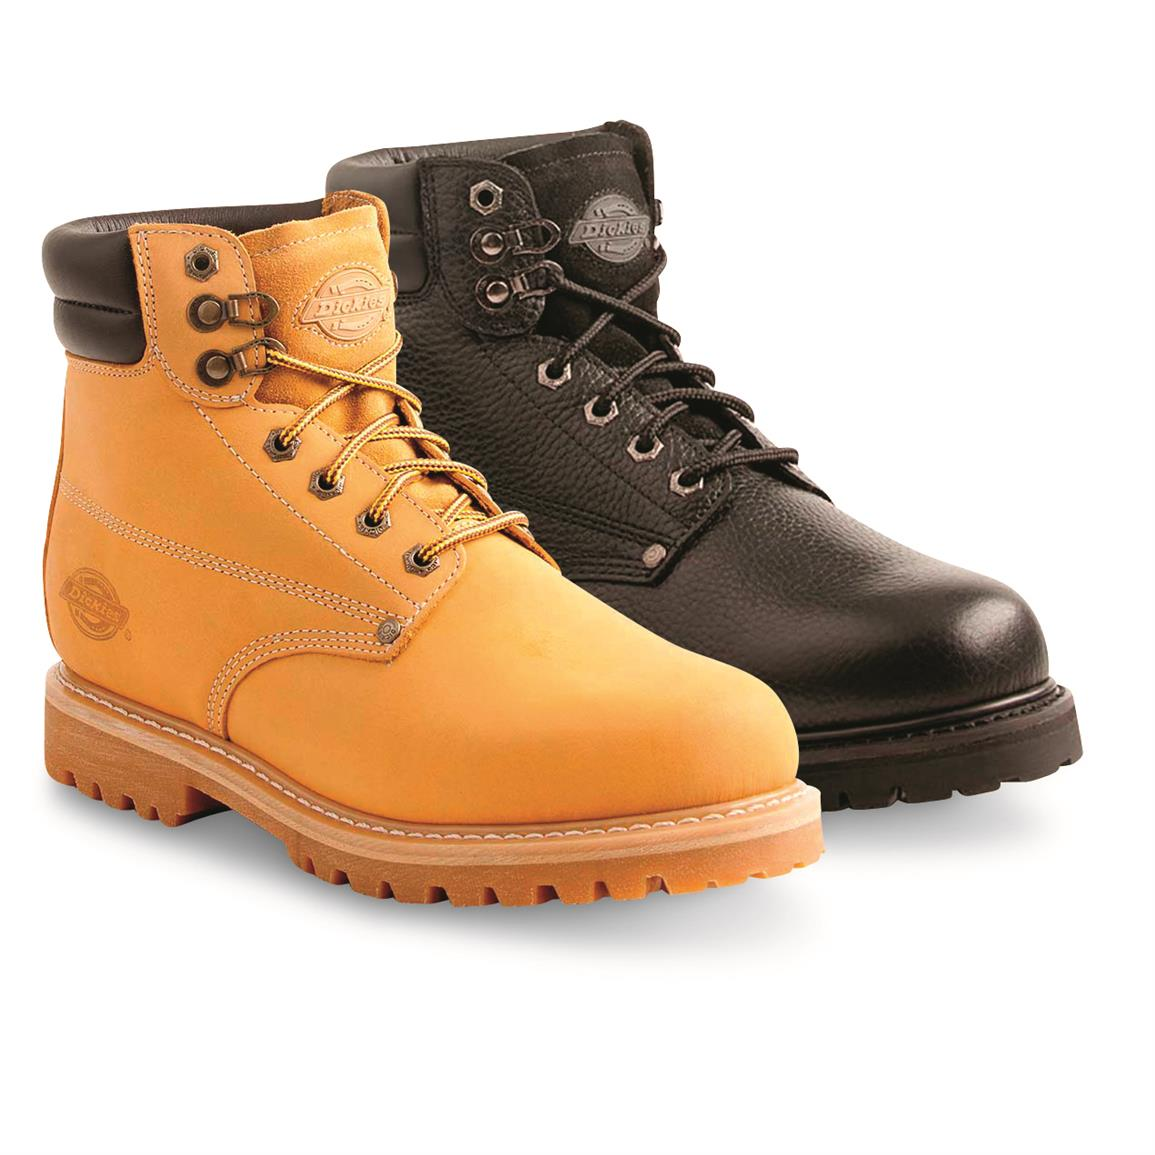 Dickies Men's Raider Work Boots